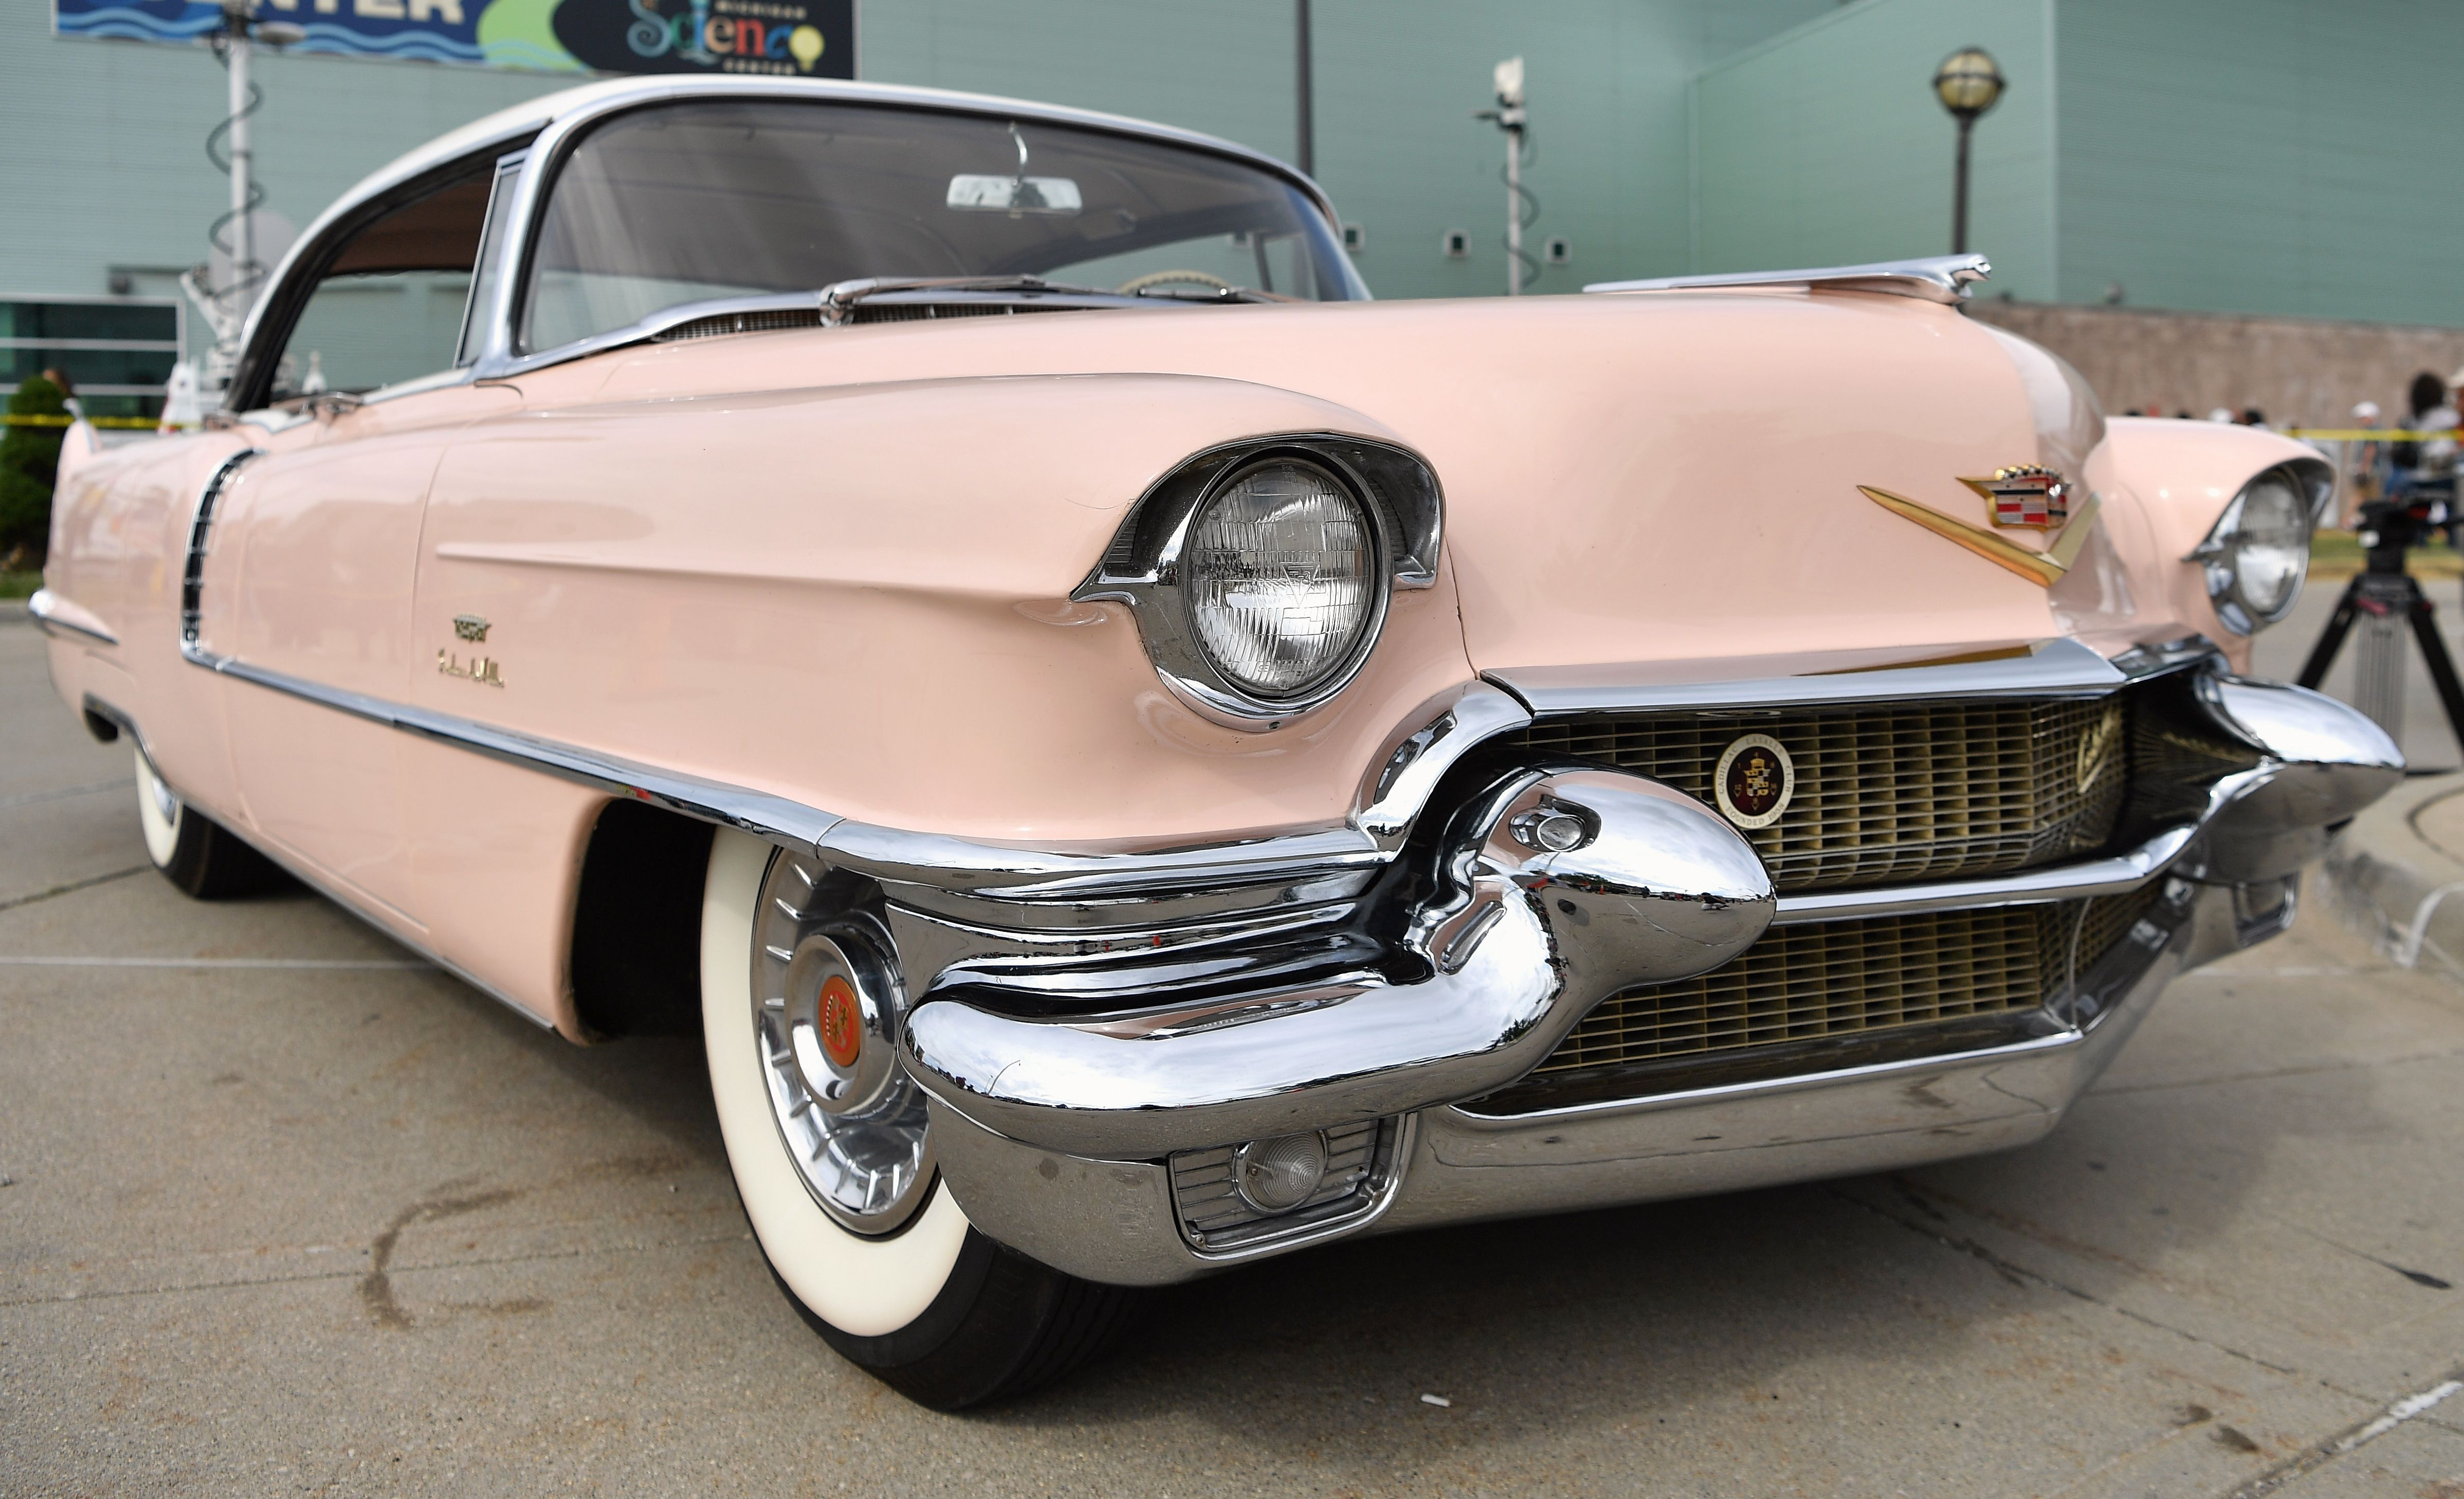 A pink Cadillac is parked at the Charles H. Wright Museum of African American History on August 29, 2018 in Detroit, Michigan.